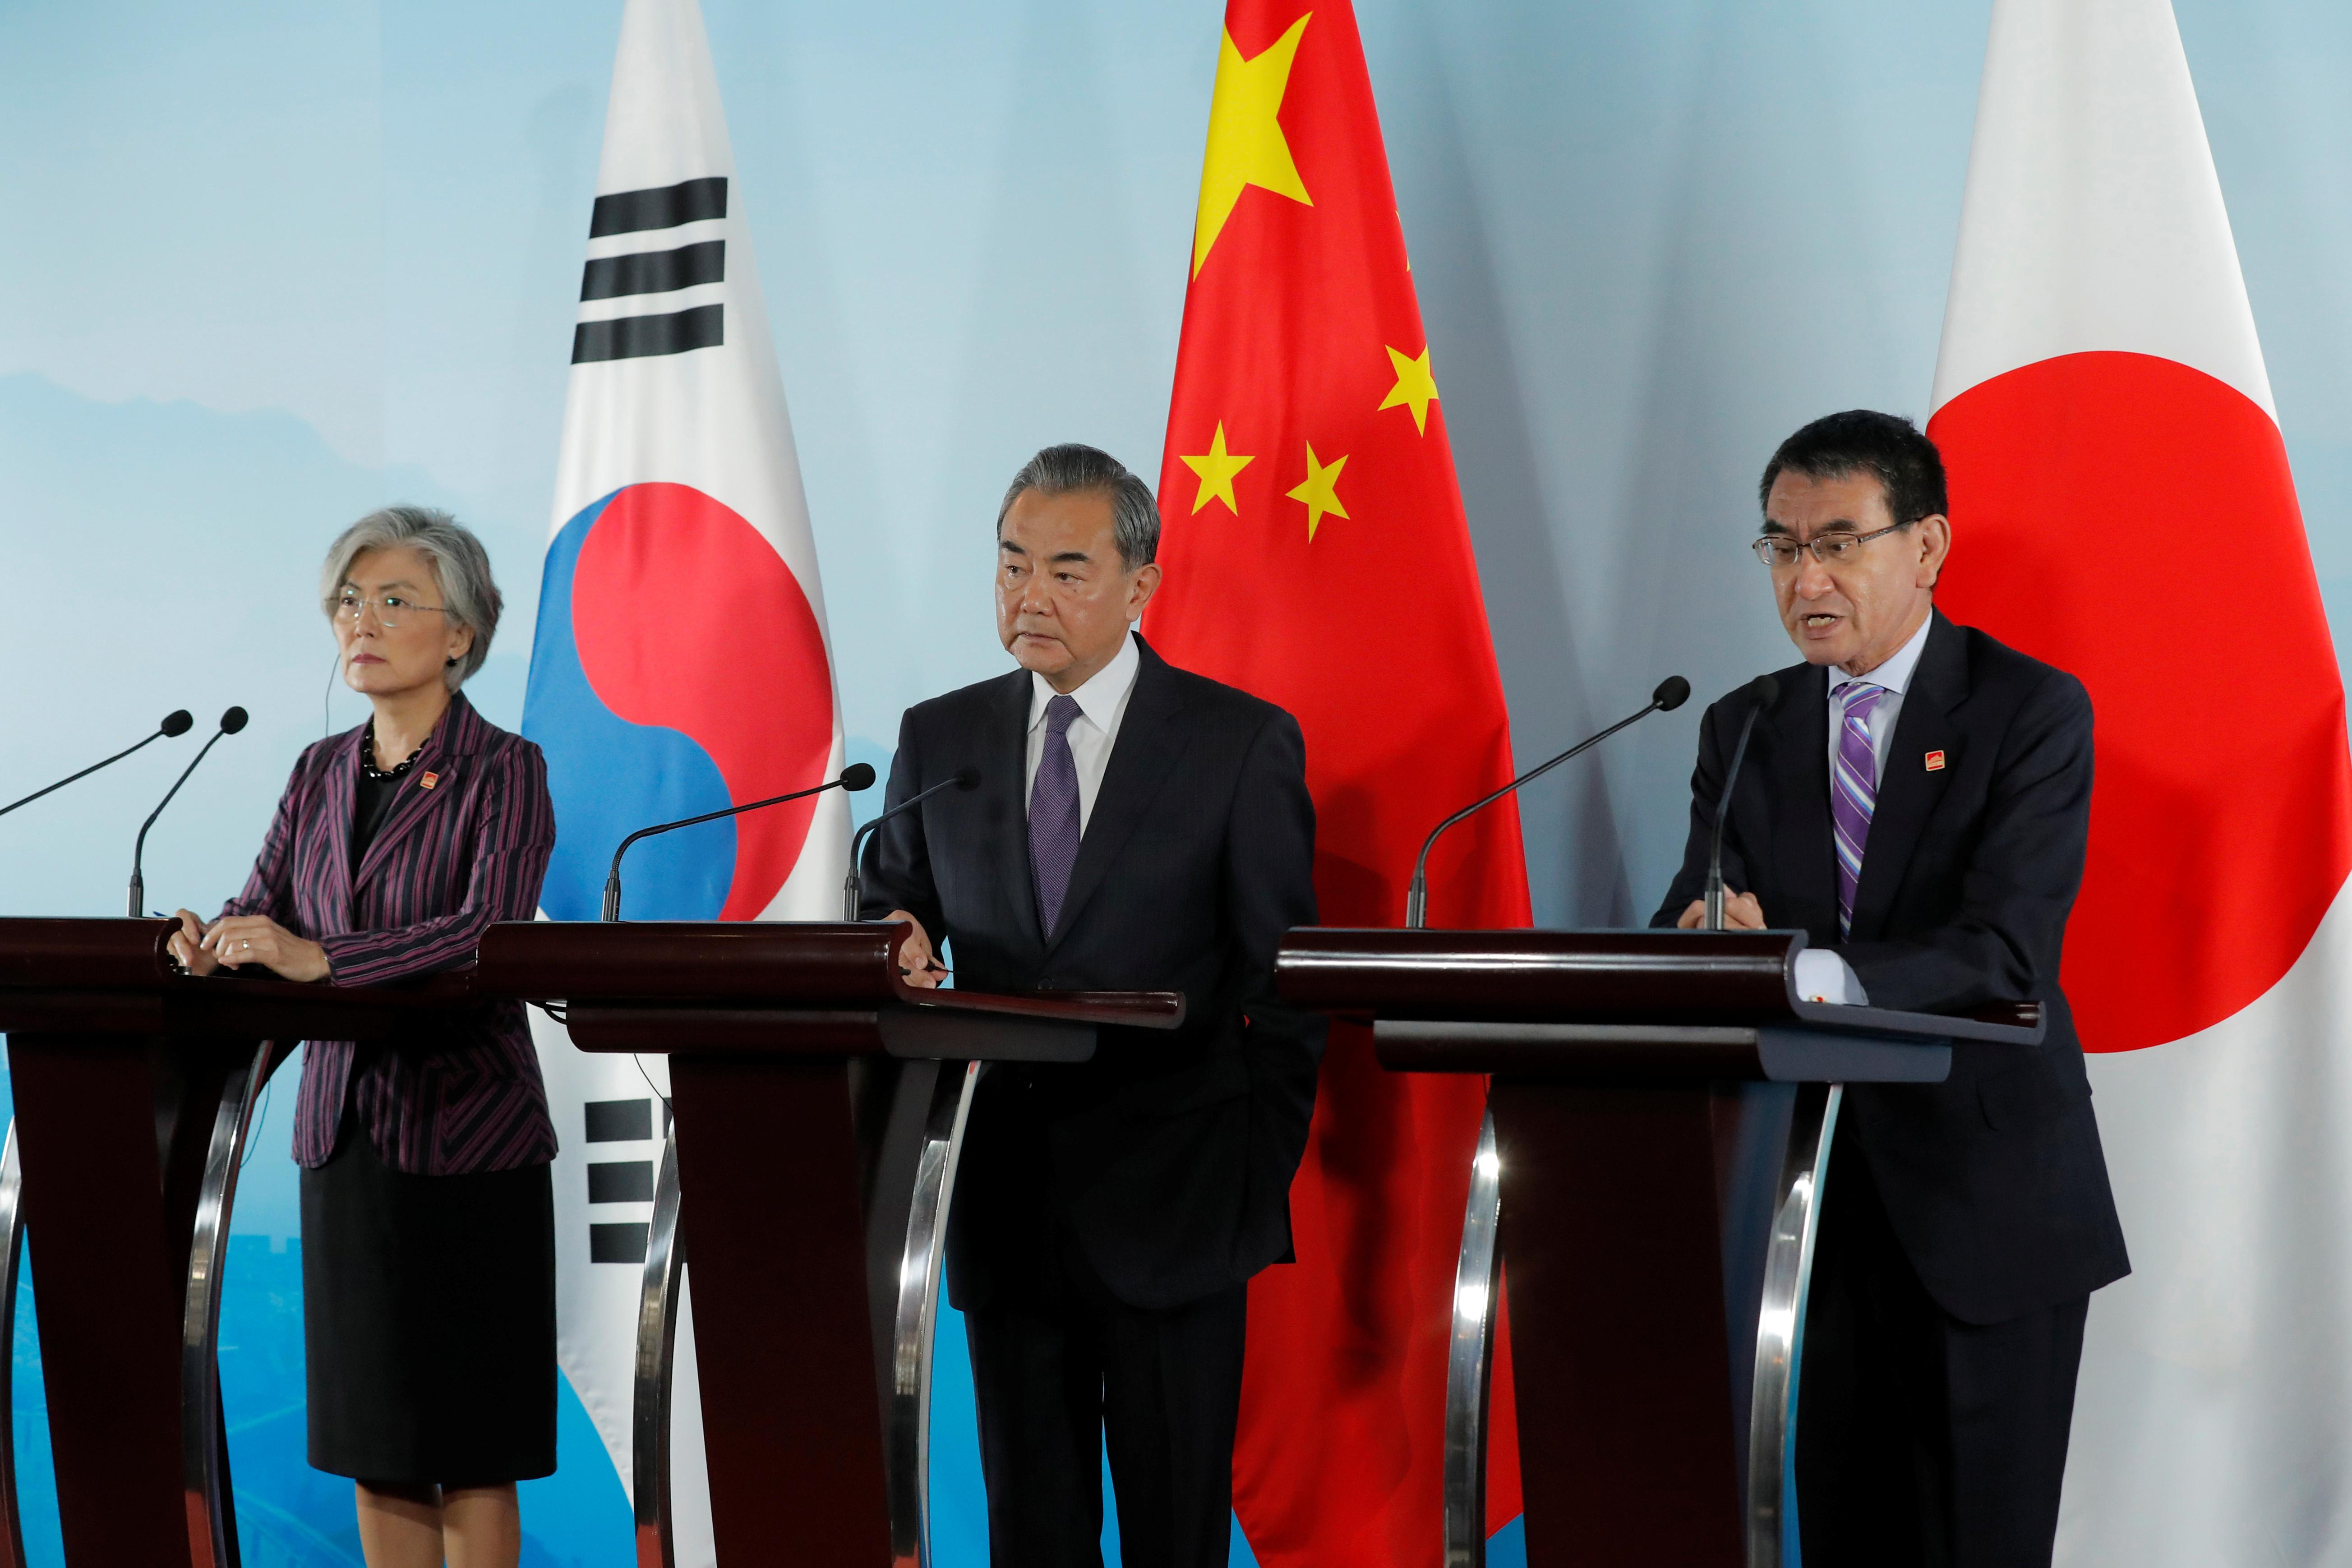 Japan, South Korea agree on need for dialogue to resolve feud on wartime labor